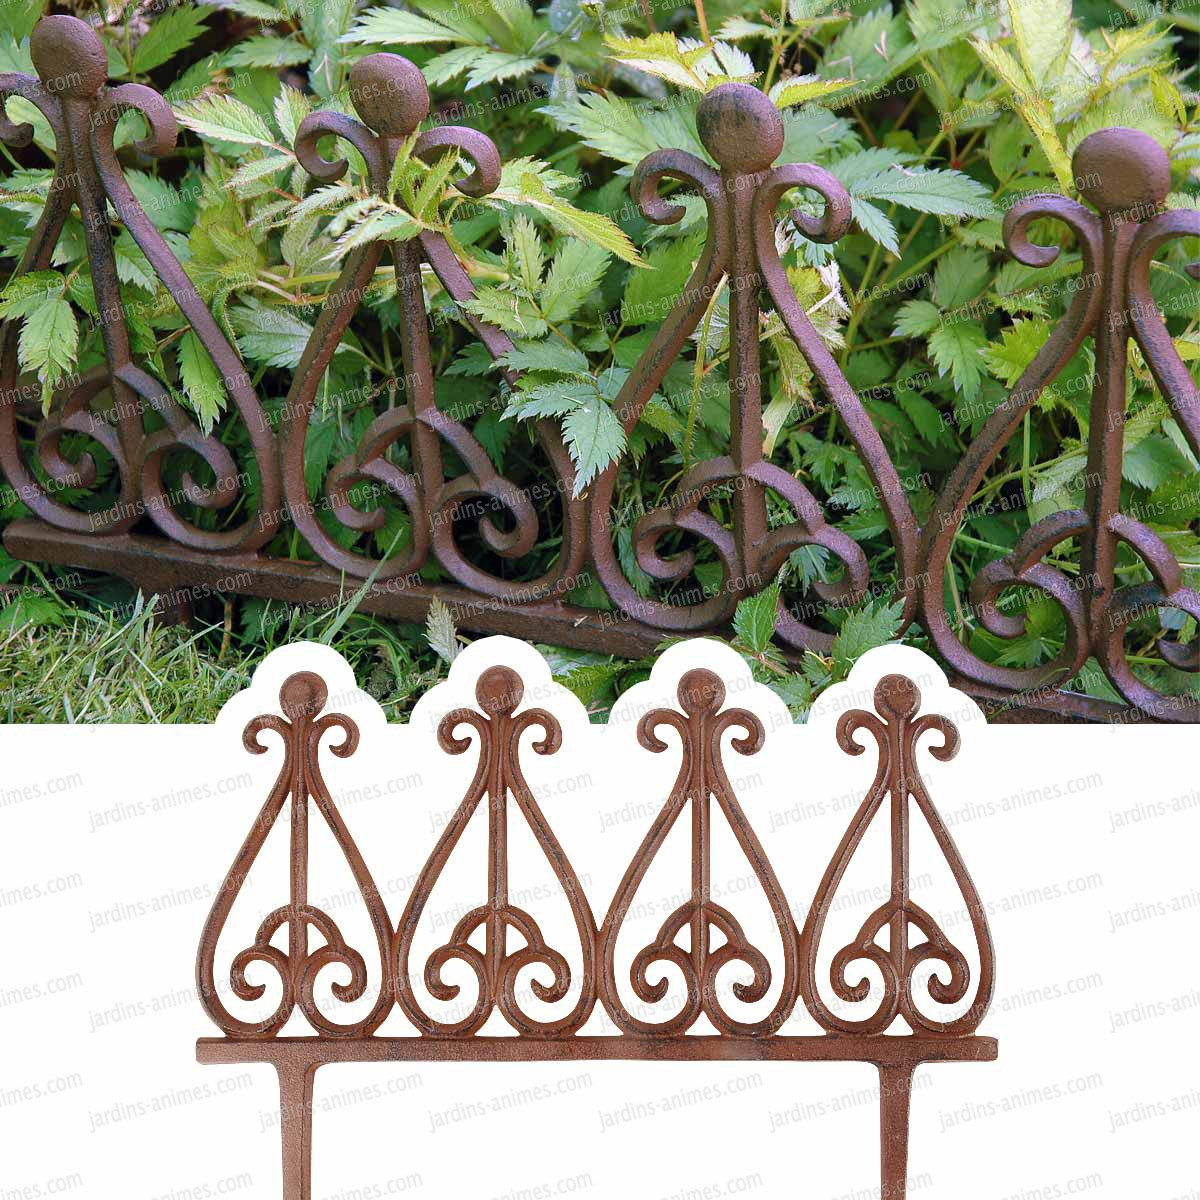 Bordure Metal Pour Jardin Of Bordure Fonte Style Antique Bordure De Jardin